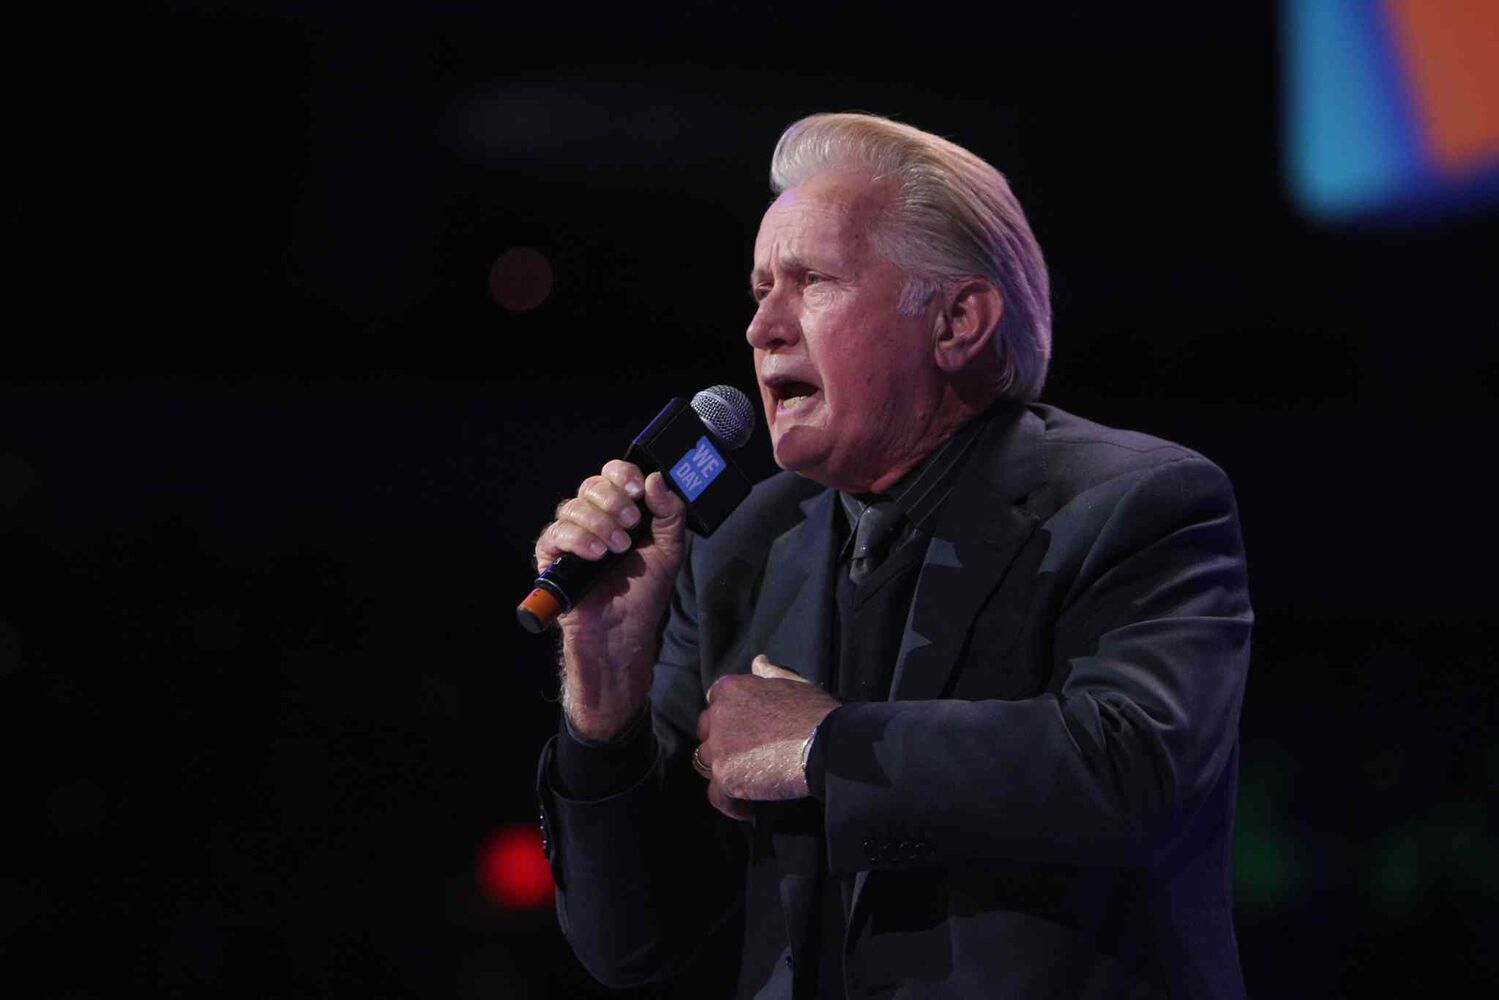 Award-winning actor and human rights advocate Martin Sheen gives an impassioned speech at We Day.